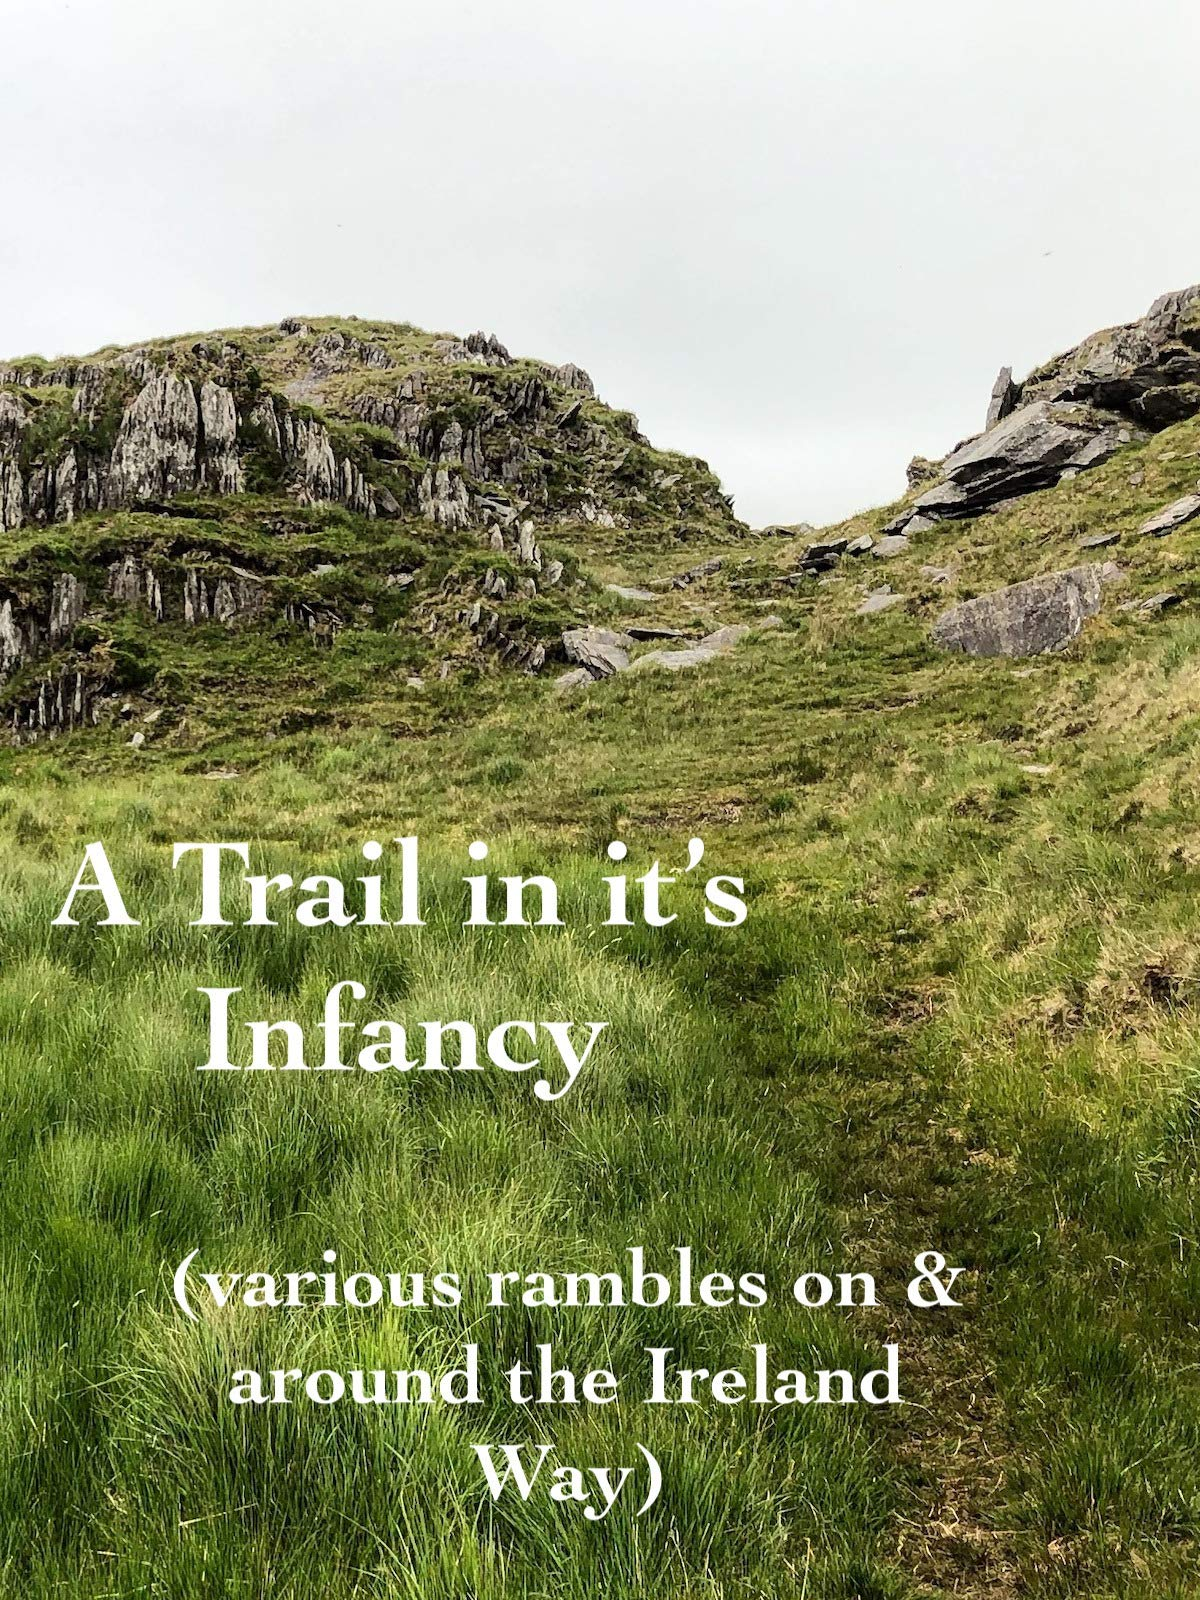 A Trail in its Infancy (various rambles on & around the Ireland Way)